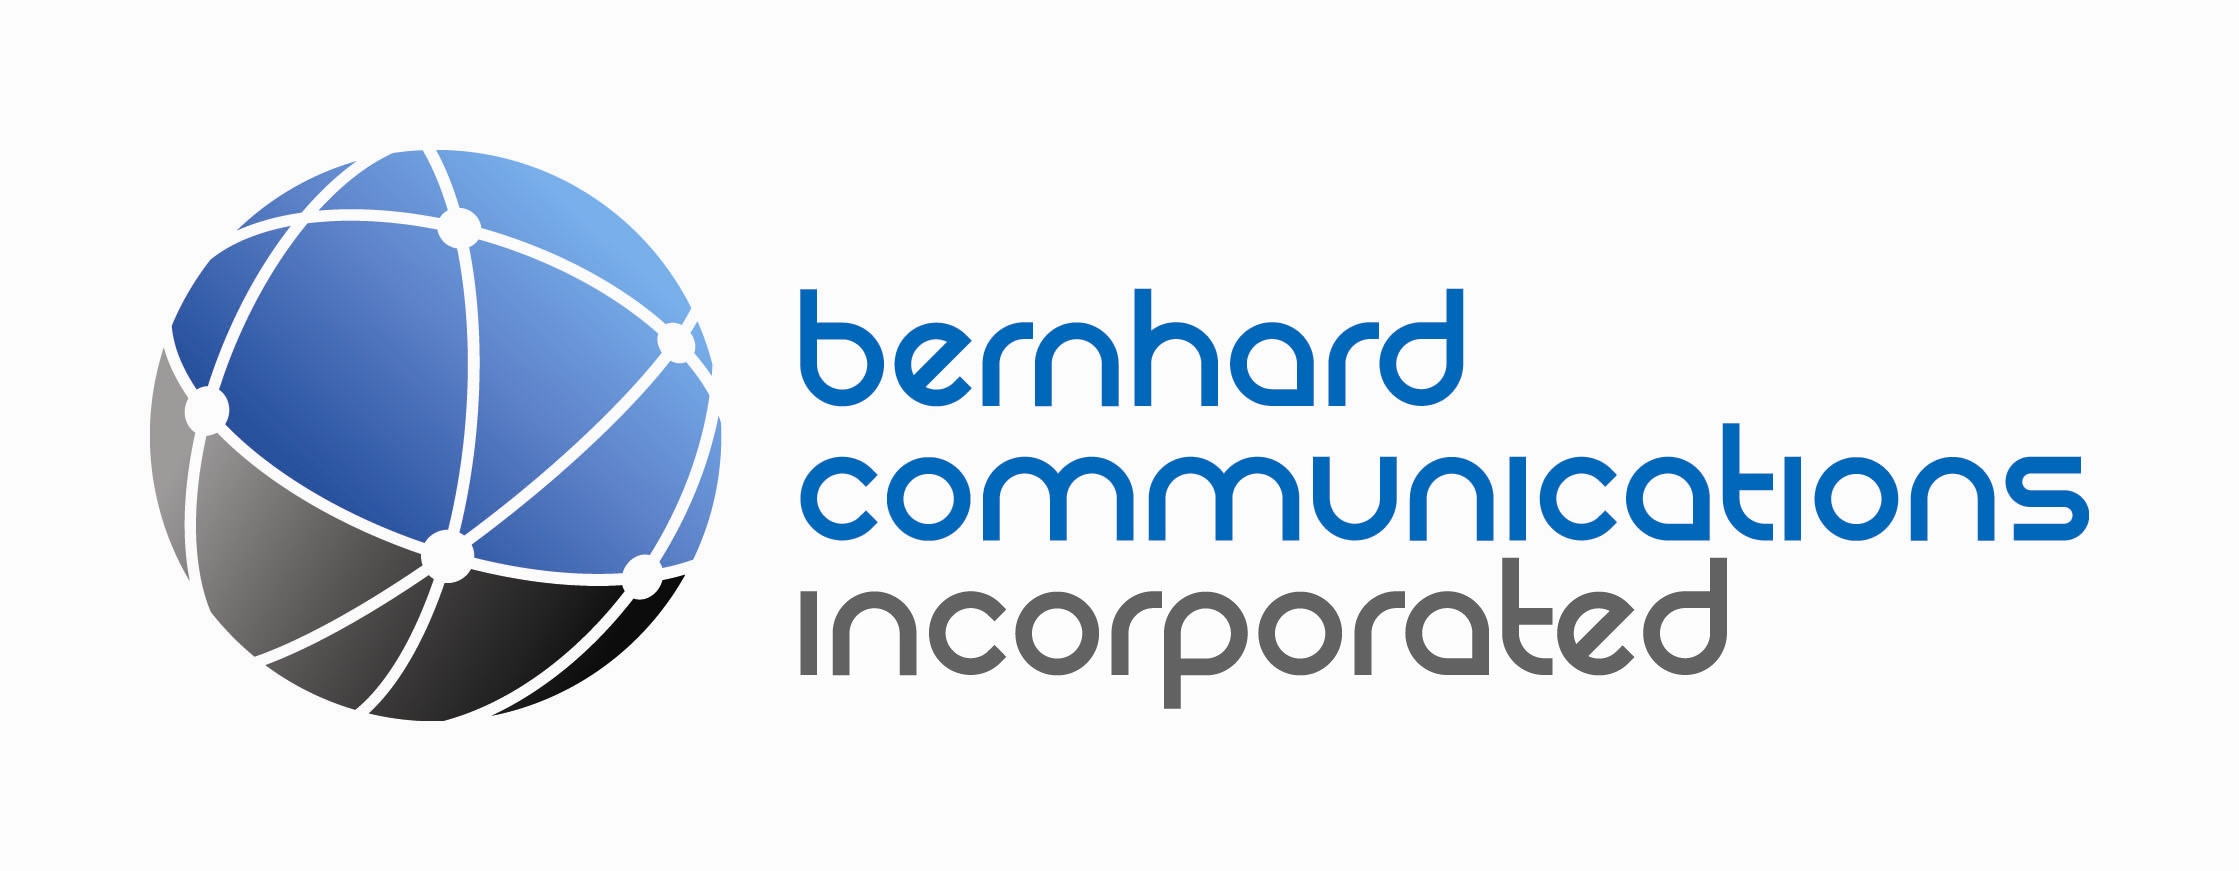 Bernhard Communications, Inc.